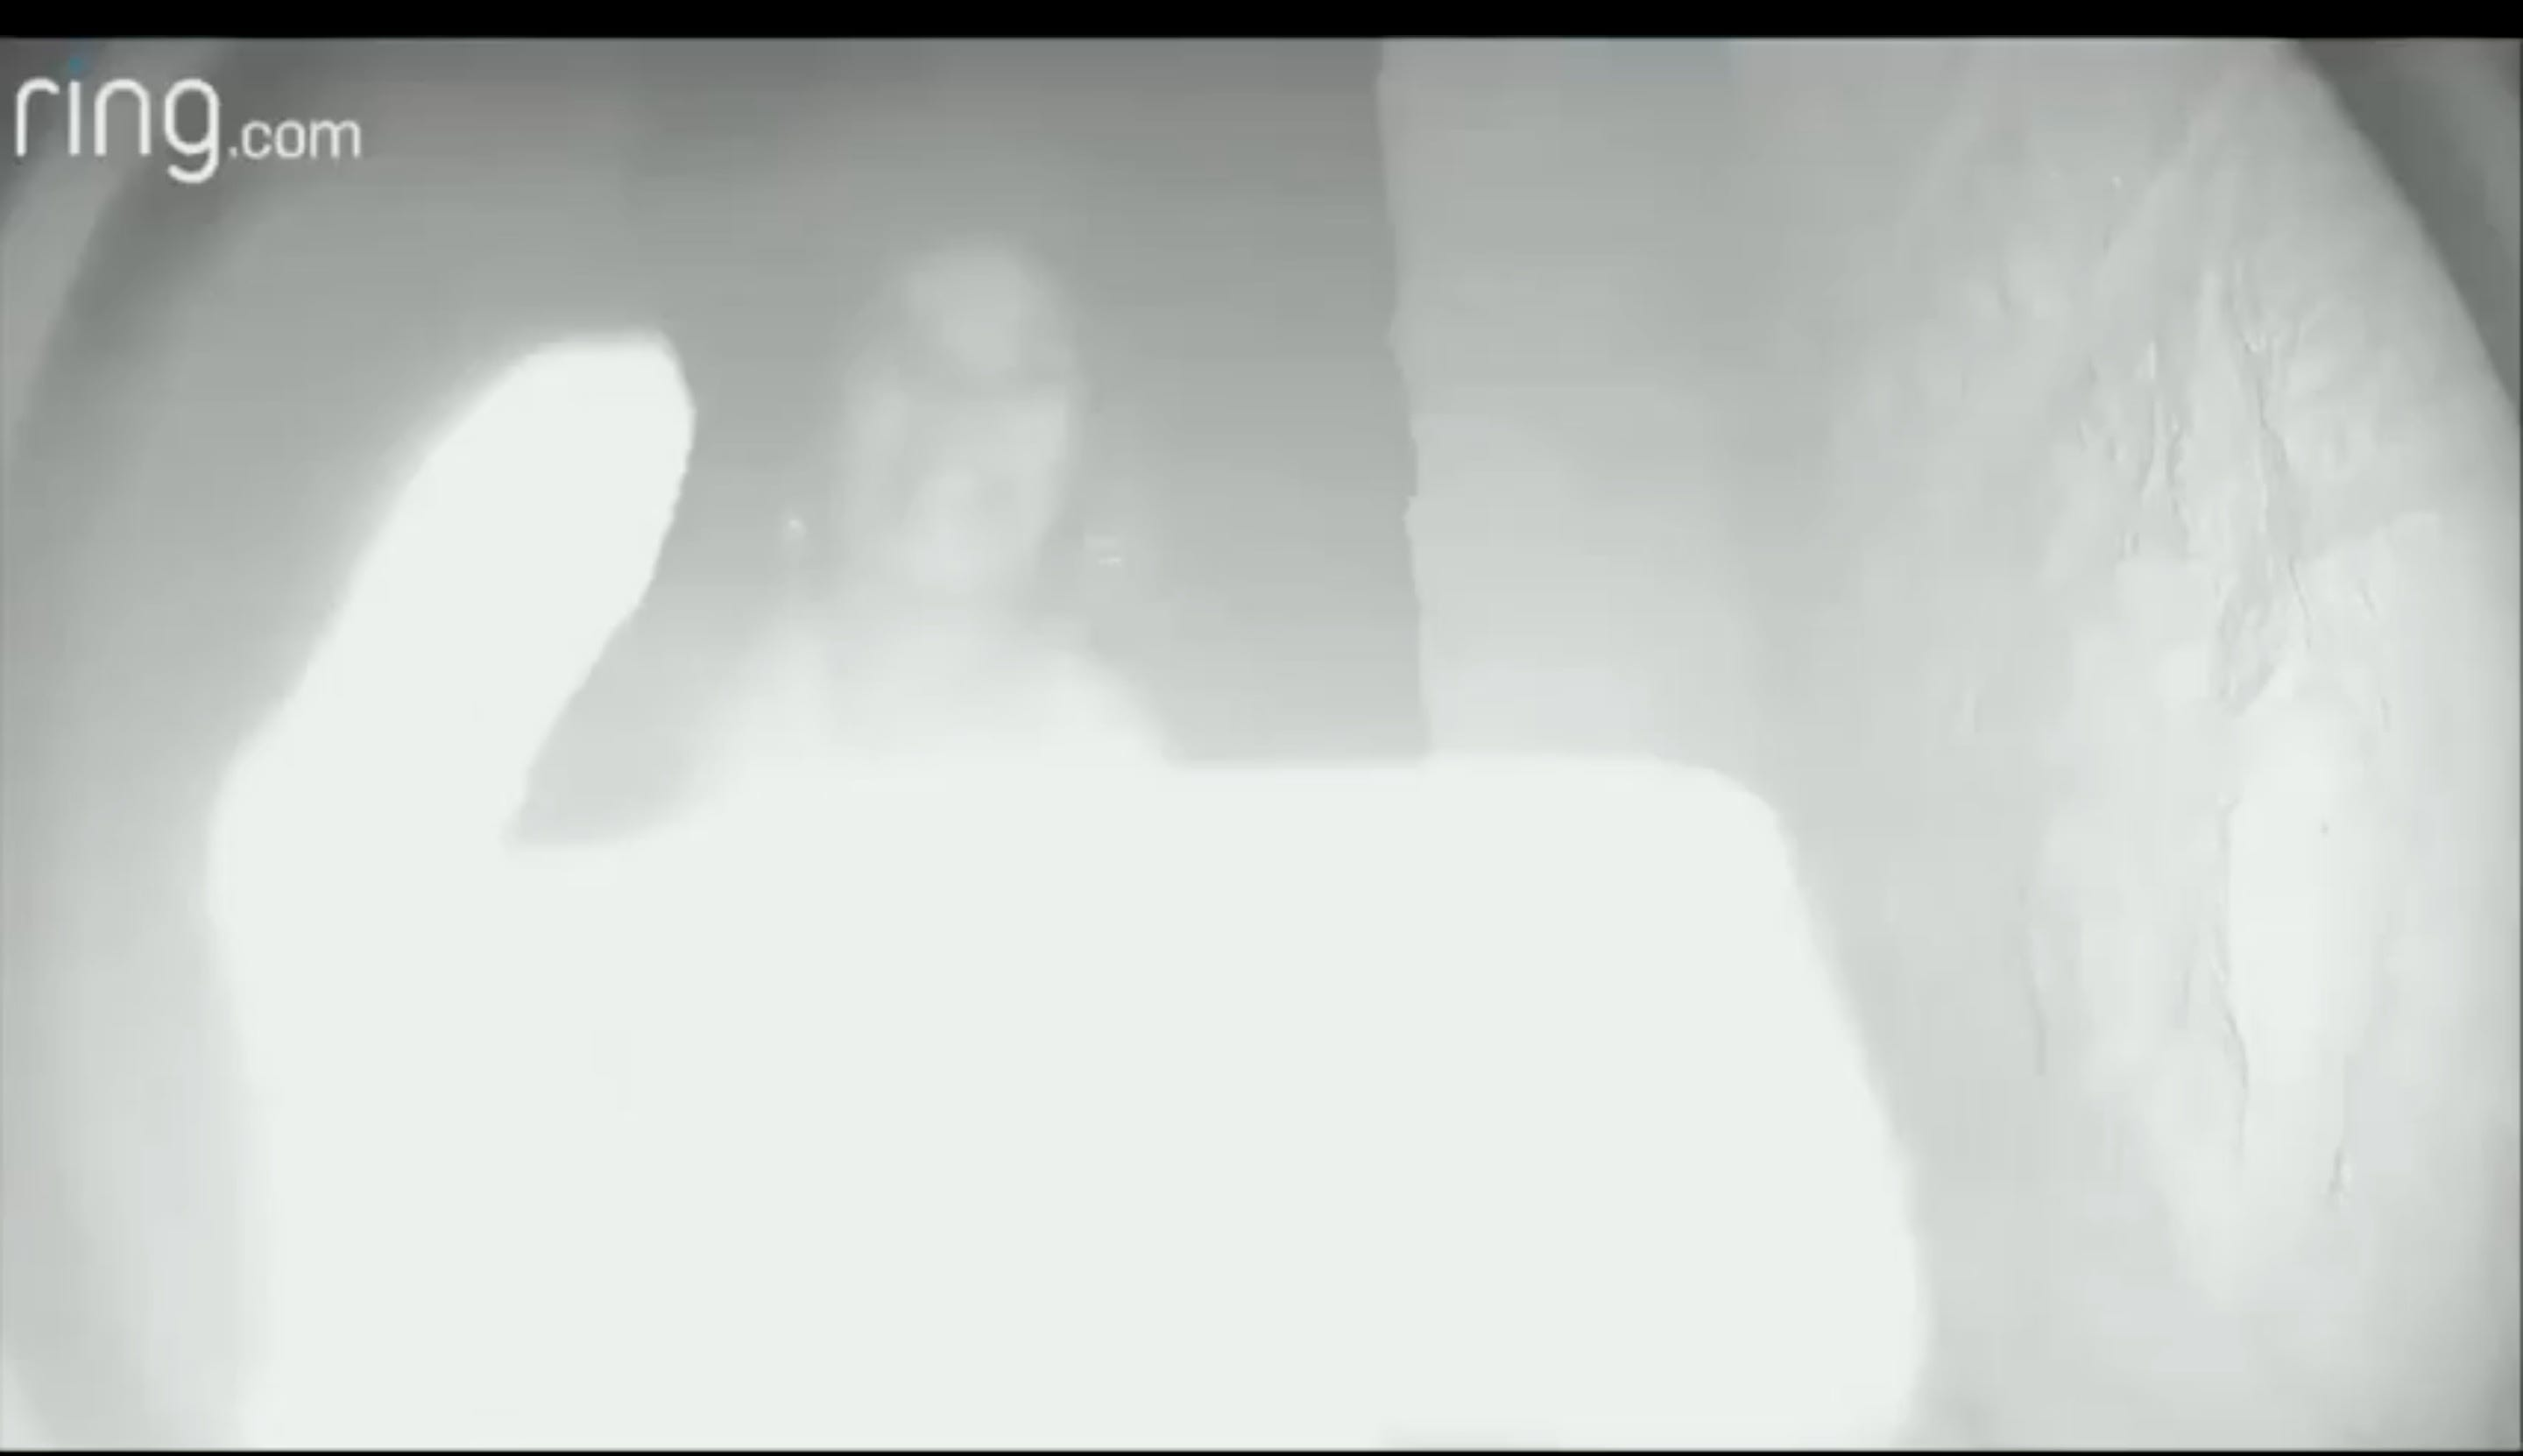 Video: Woman leaves toddler on stranger's doorstep. She could face charges. | Burlington Free Press